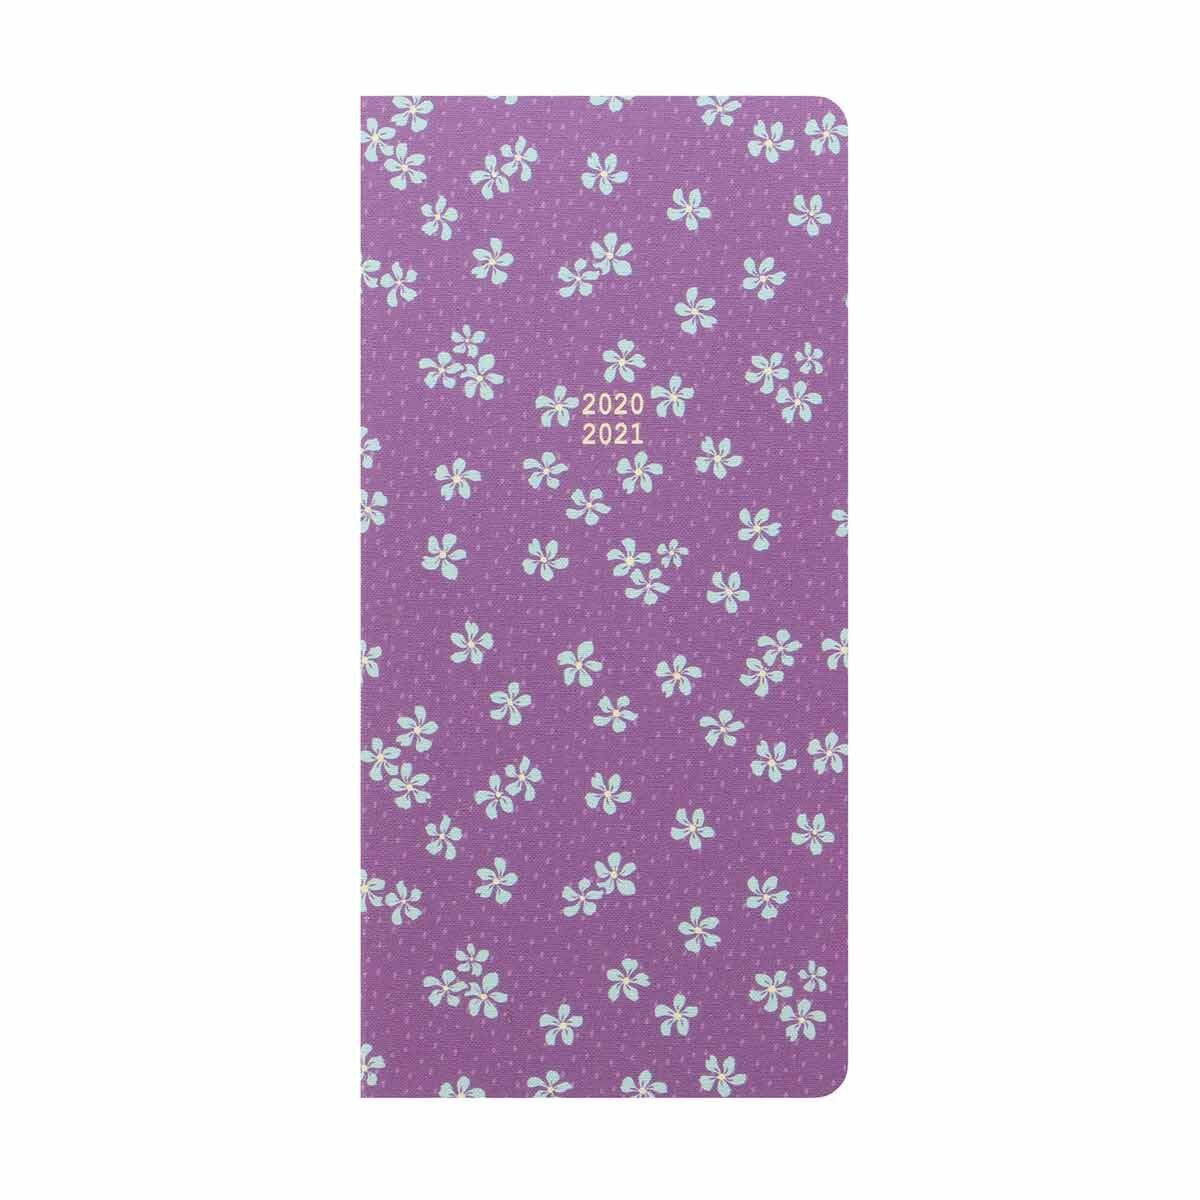 Letts Floret Mid-Year Diary Week to View Slim 2020-2021 Light Purple